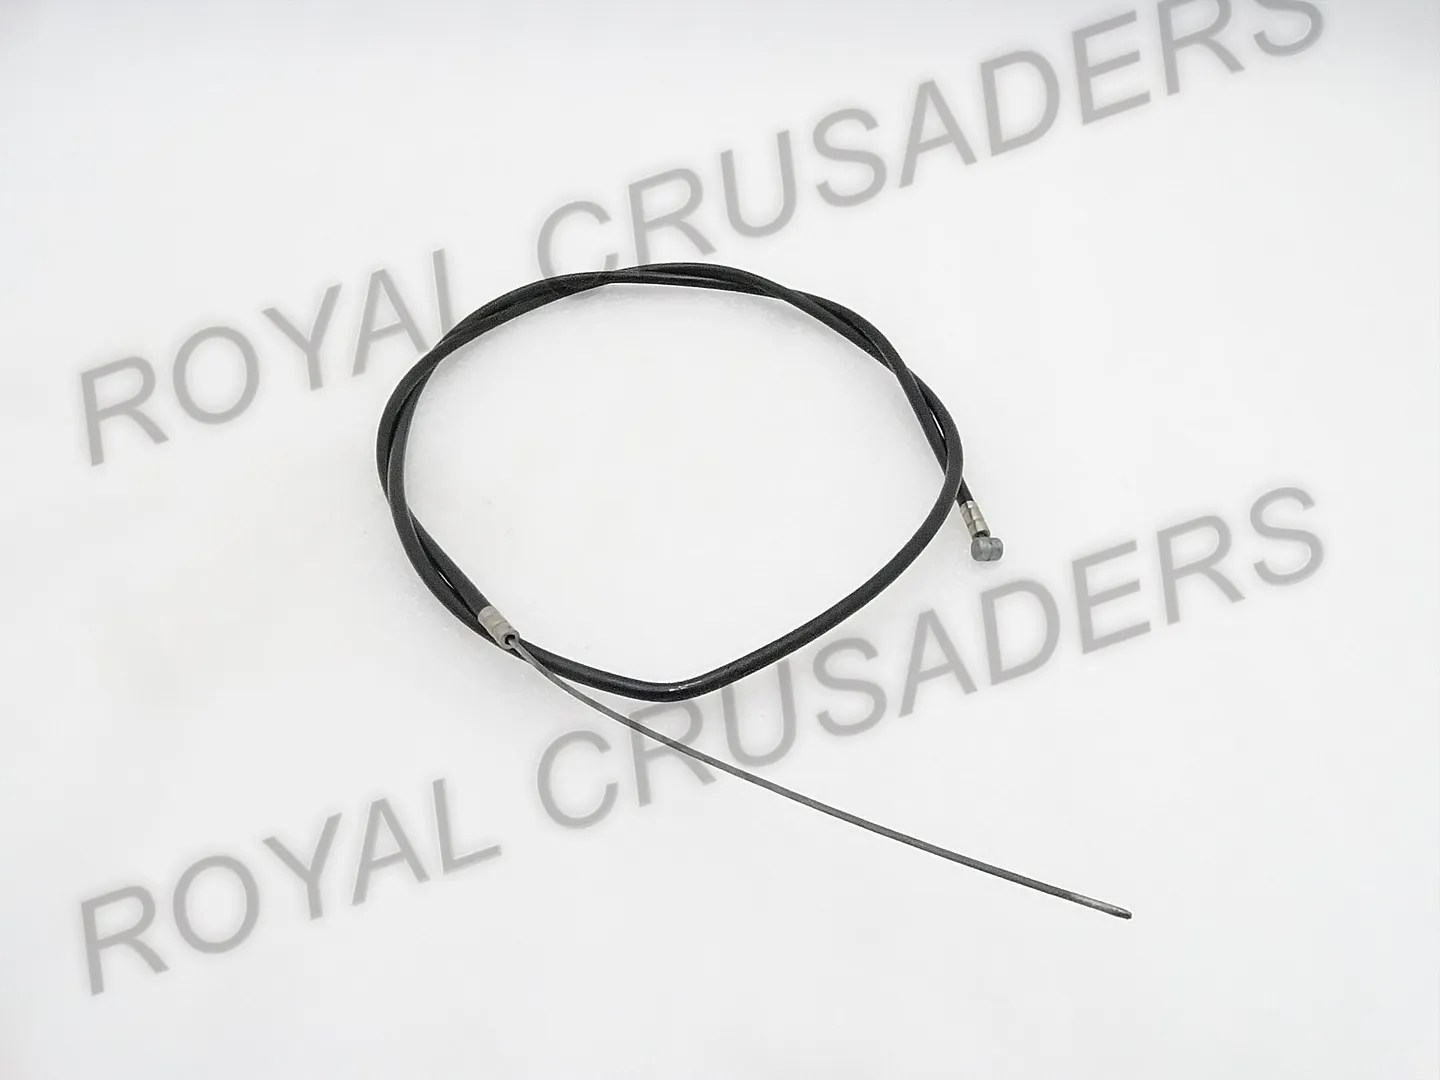 NEW JAWA MOTORCYCLE CLUTCH CABLE ASSEMBLY WITH ADJUSTER